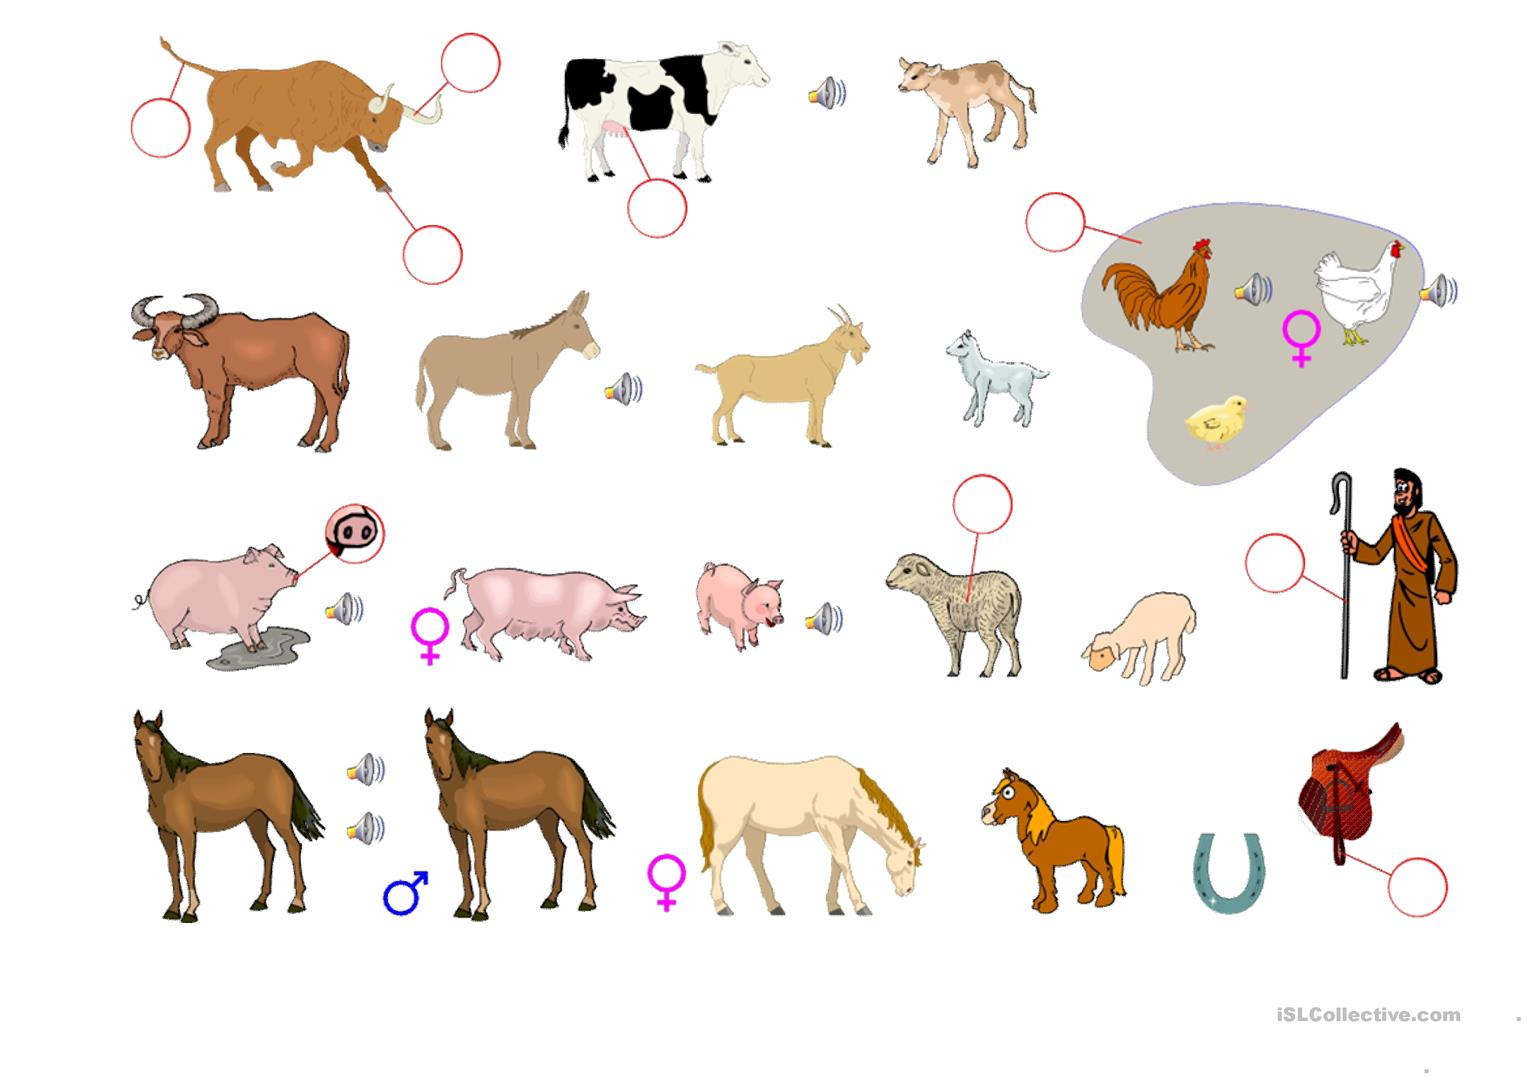 Worksheet On Domestic Animals